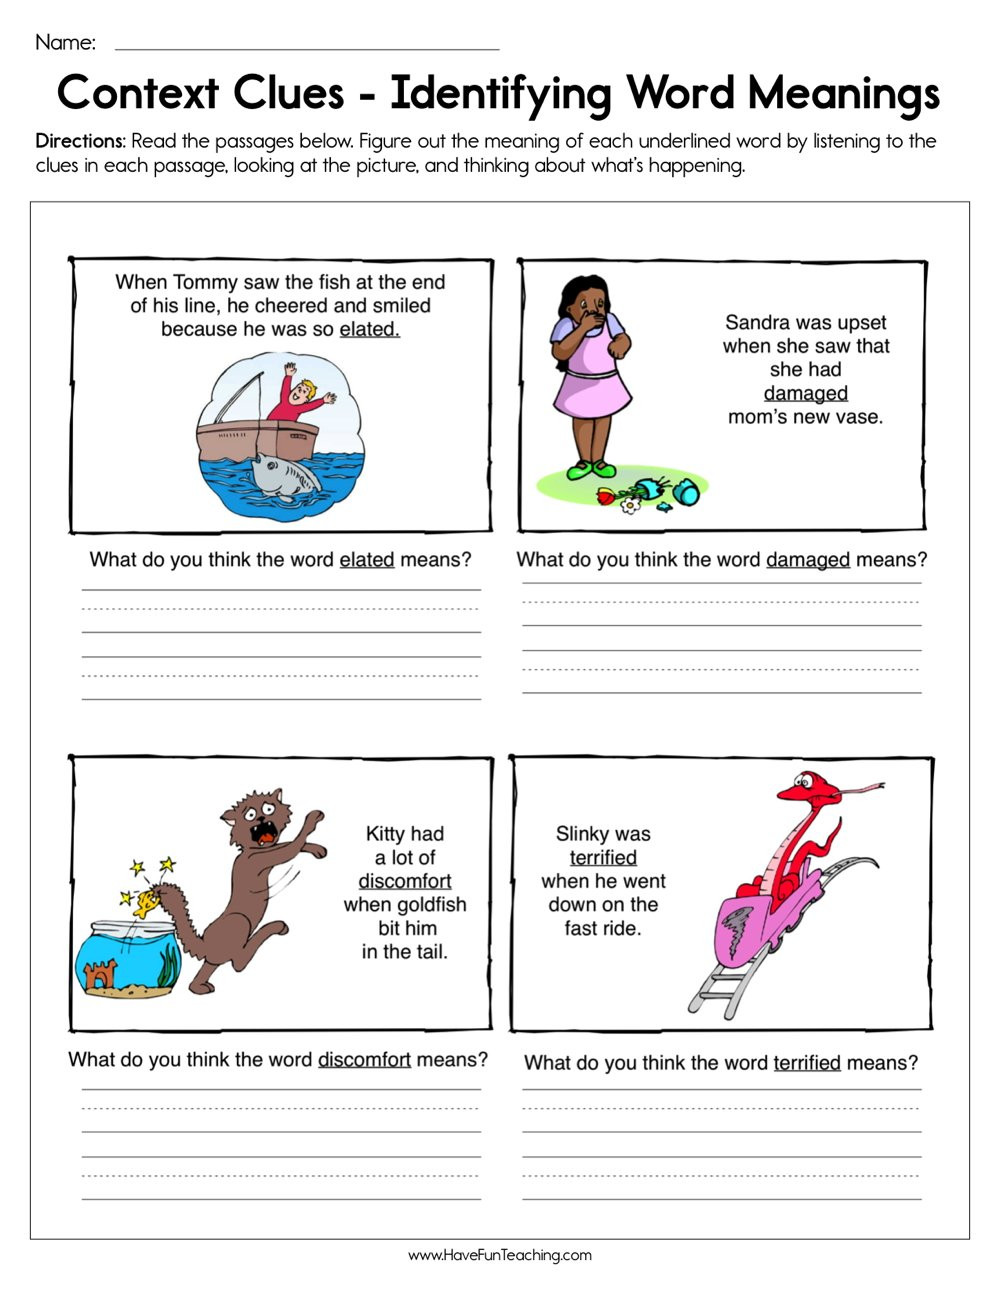 Context Clues Worksheets Second Grade Context Clues Identifying Word Meaning Worksheet